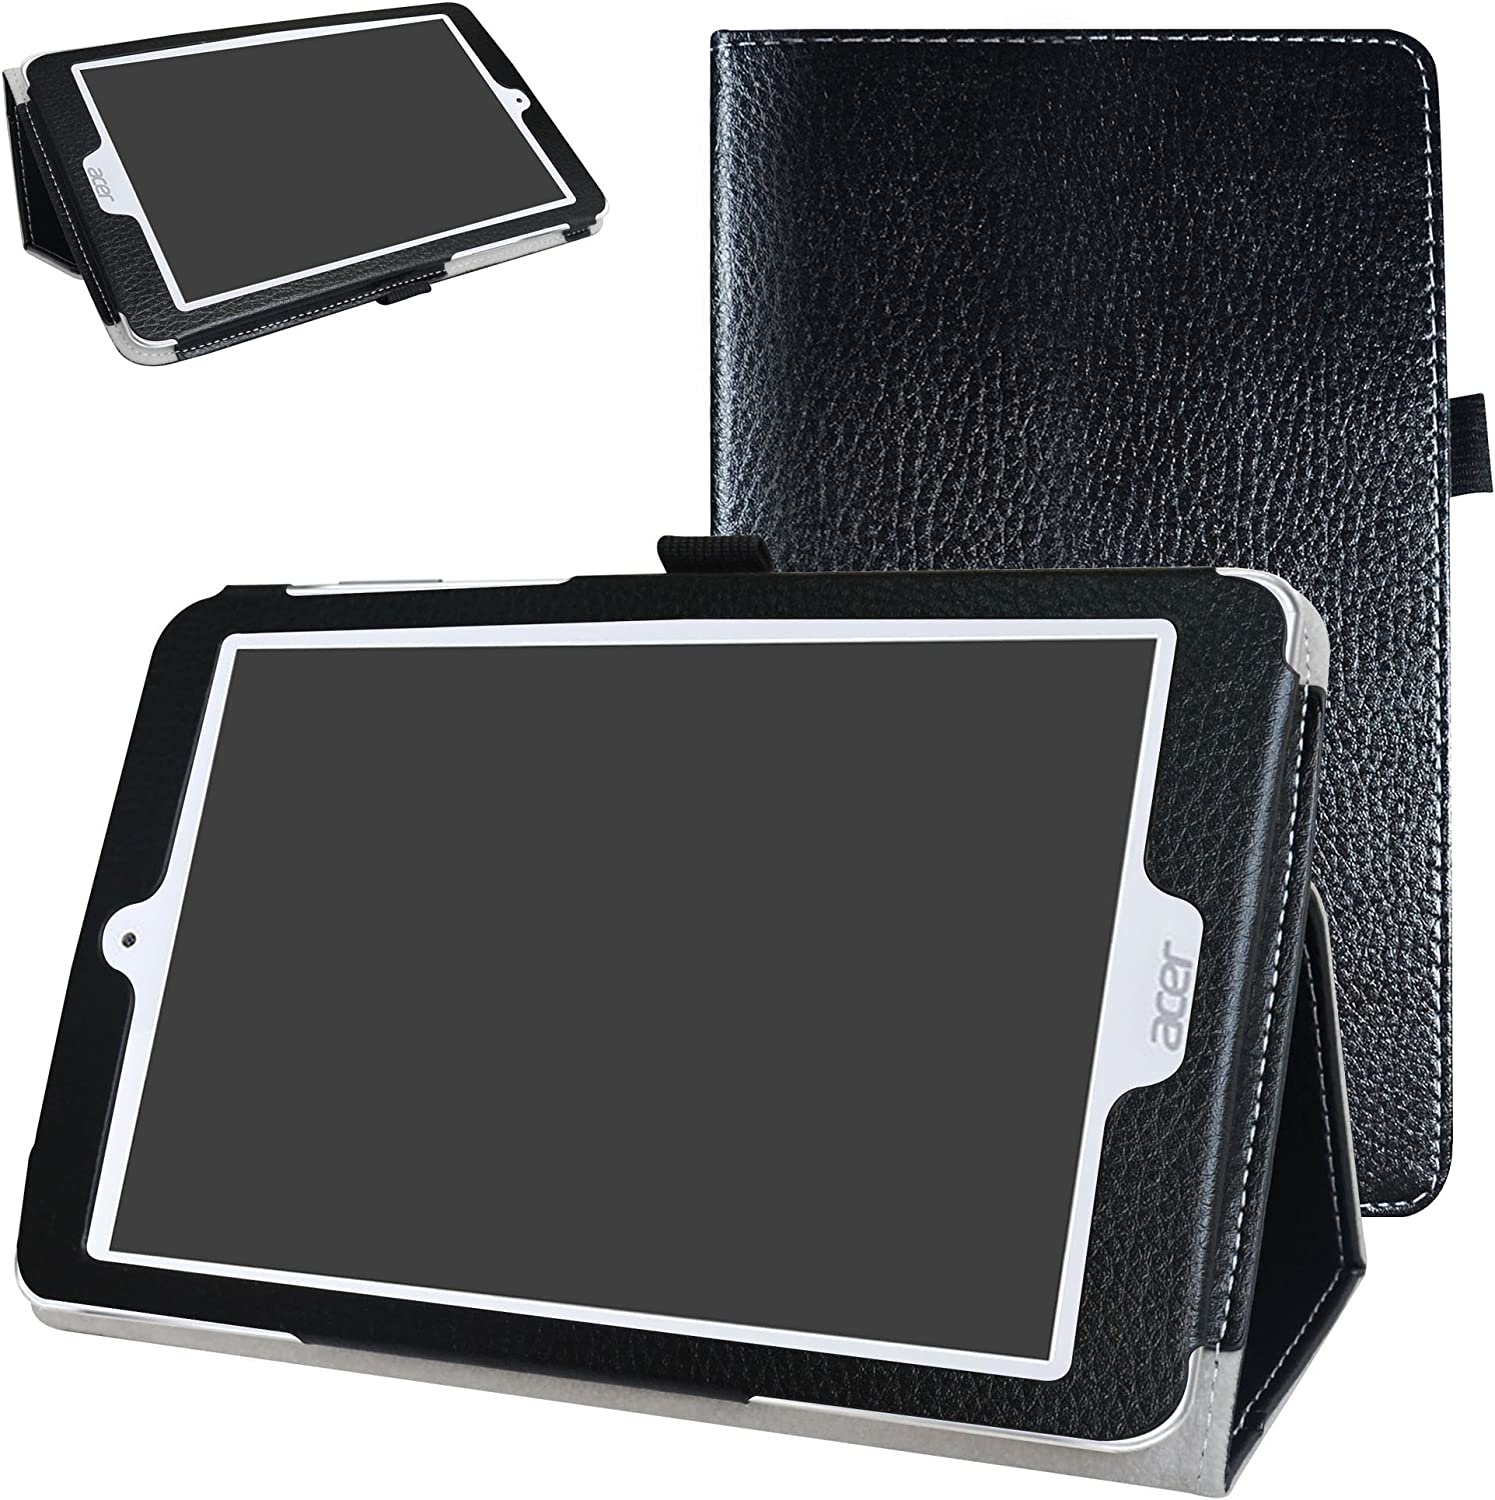 "Acer Iconia One 8 B1-860 Case,Mama Mouth PU Leather Folio 2-Folding Stand Cover with Stylus Holder for 8.0"" Acer Iconia One 8 B1-860 Android Tablet,Black"